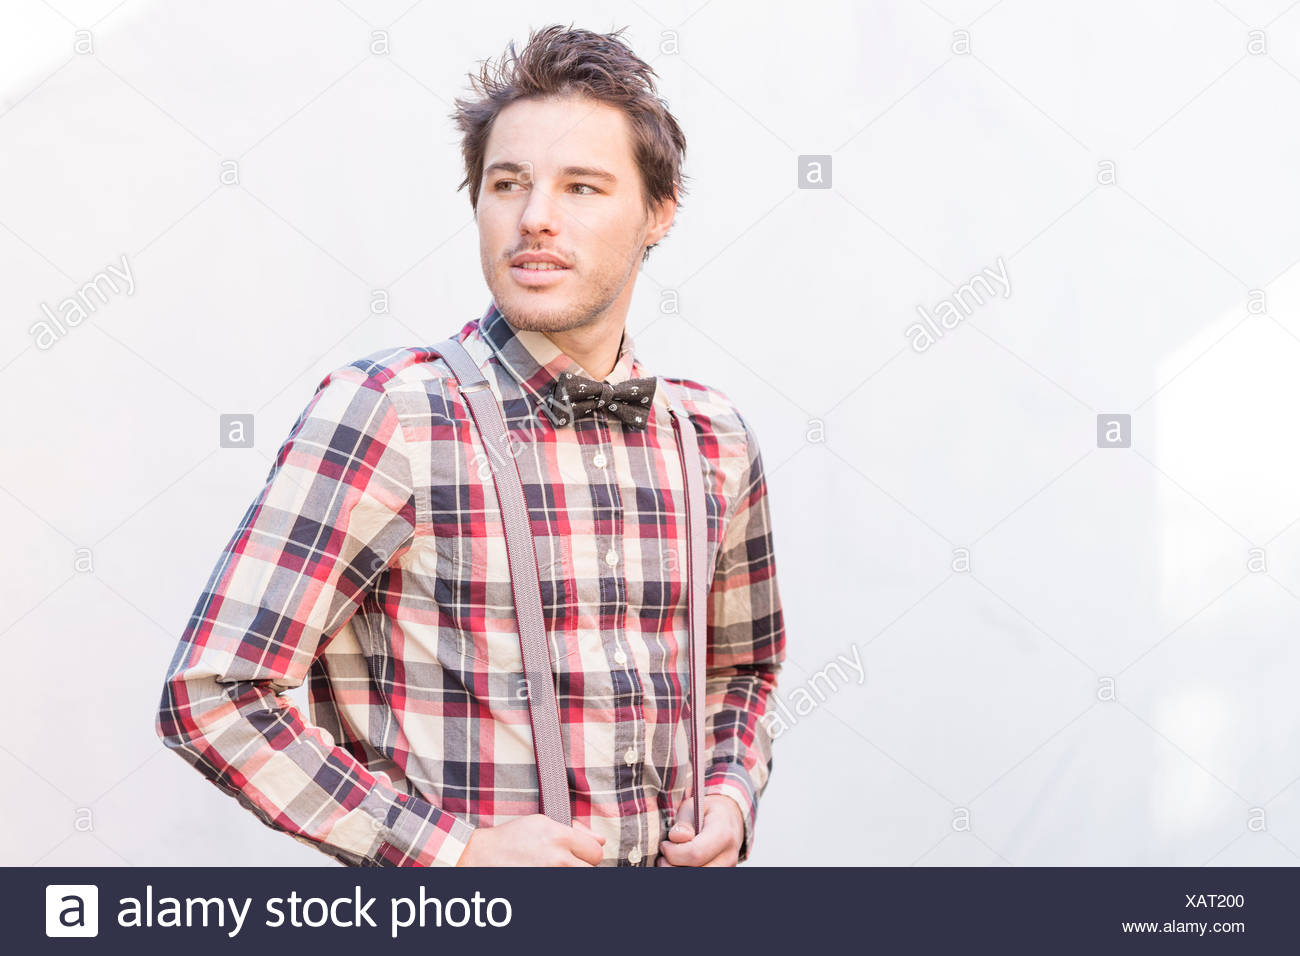 Young man standing in front of wall looking away - Stock Image